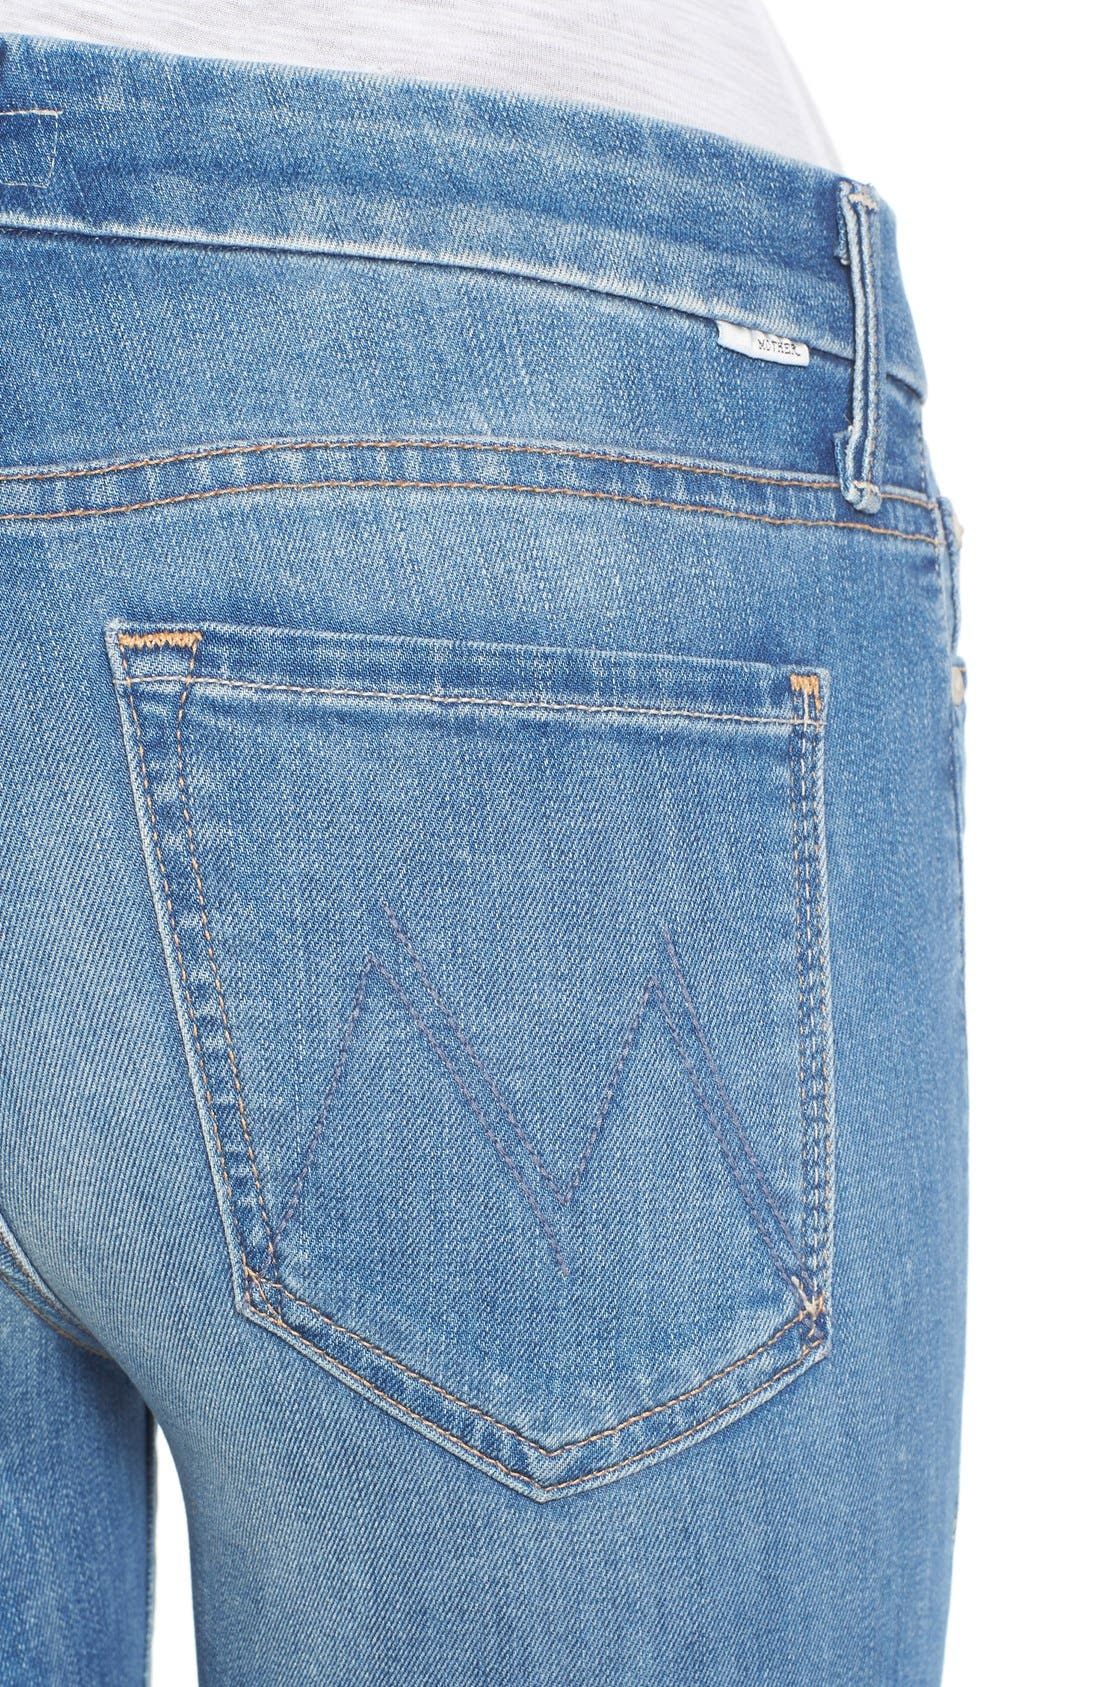 'The Looker' Fray Ankle Jeans,                             Alternate thumbnail 4, color,                             420